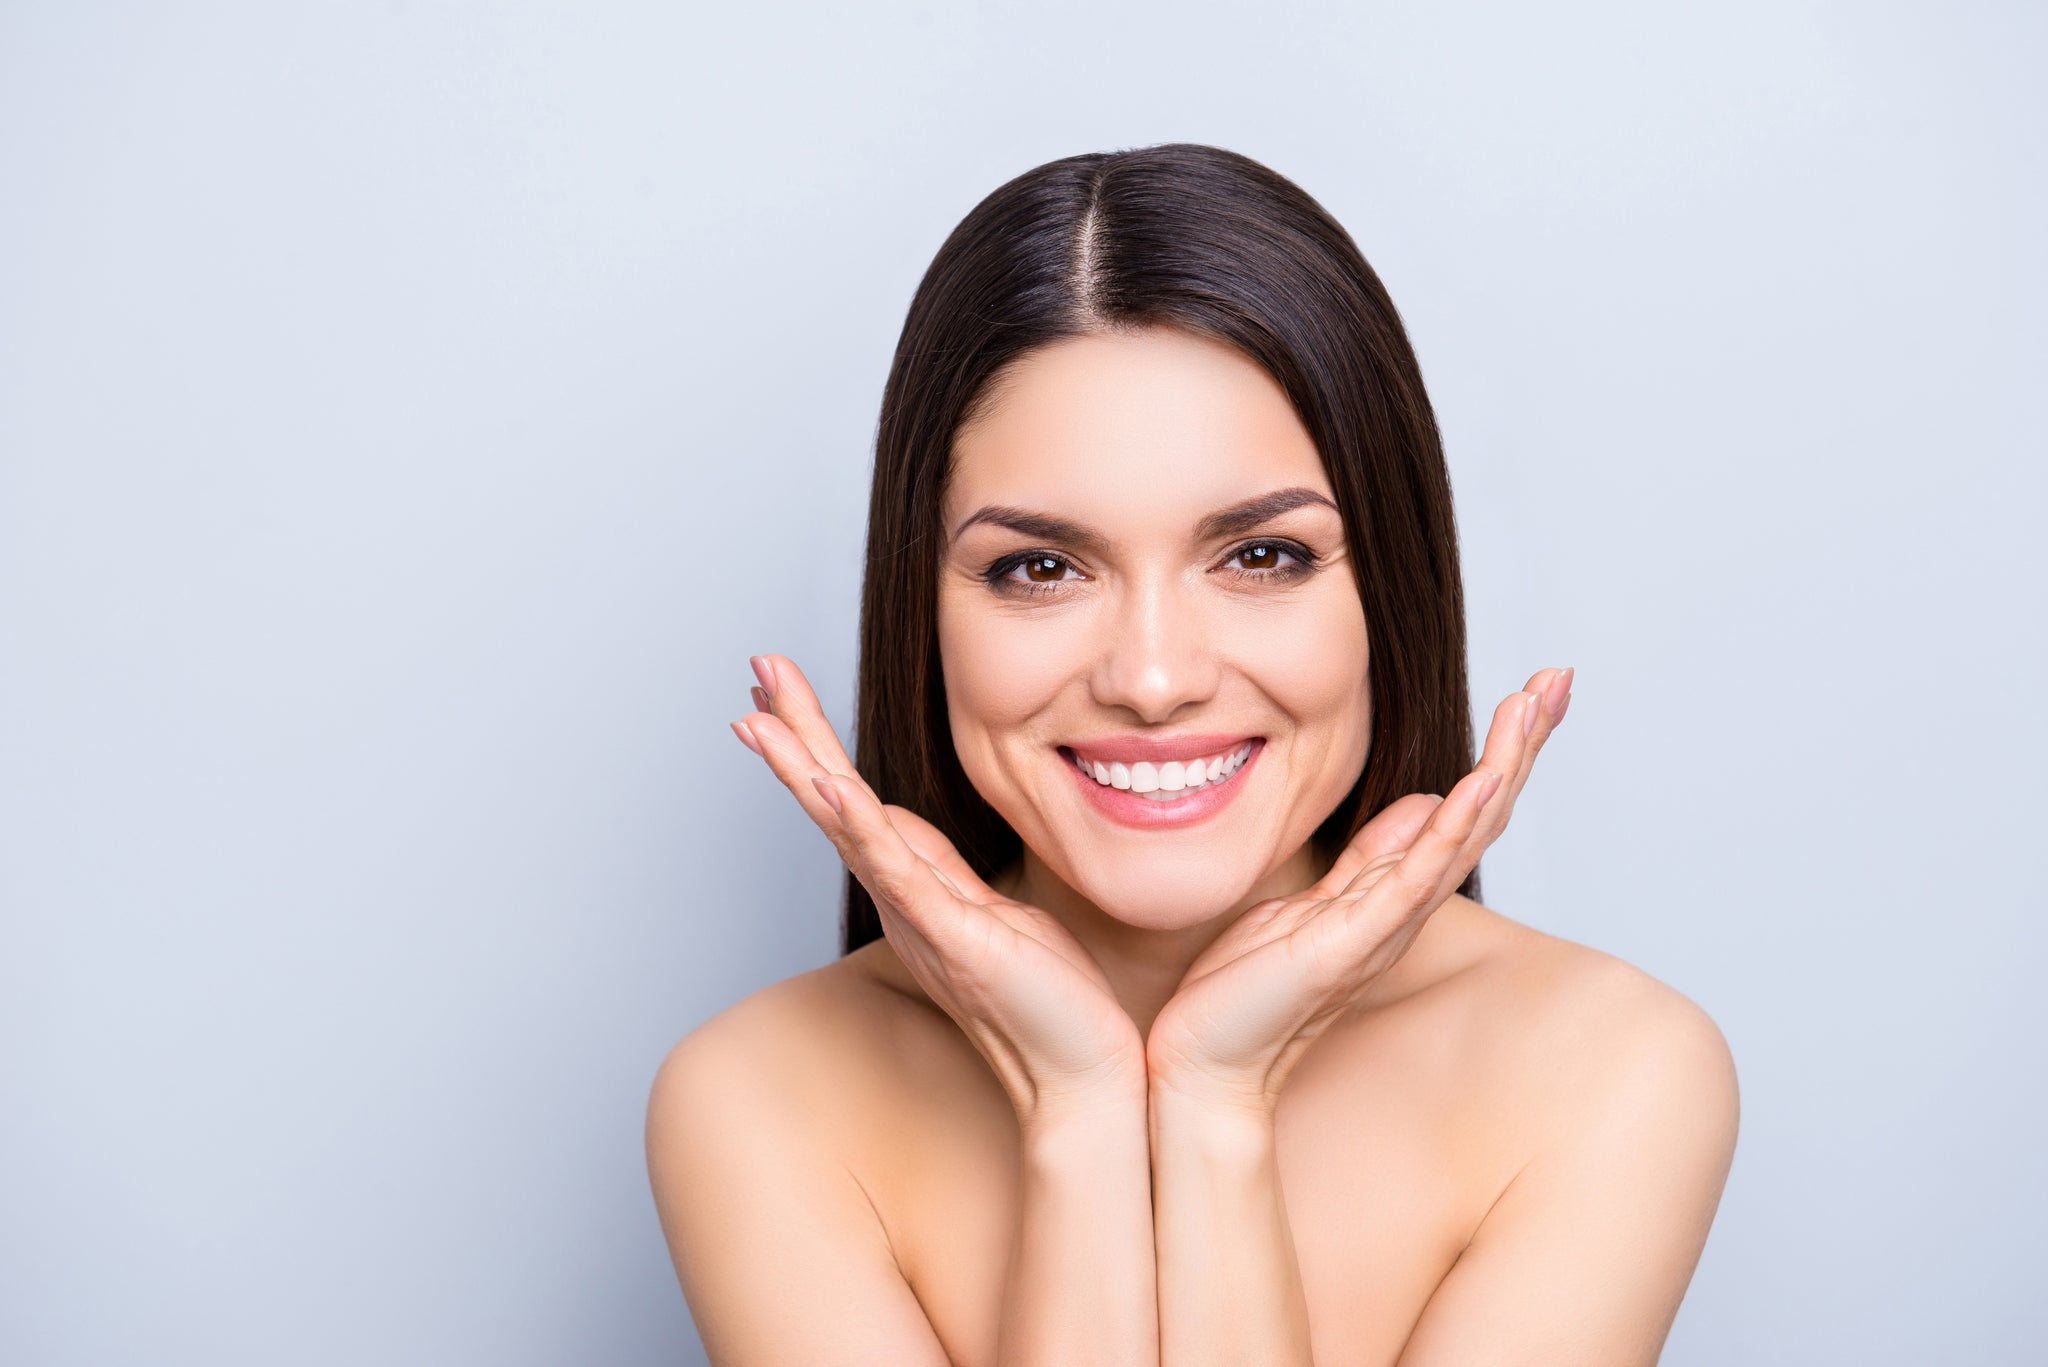 6 Surprising Benefits Of Botox (I Was Inspired By #5)